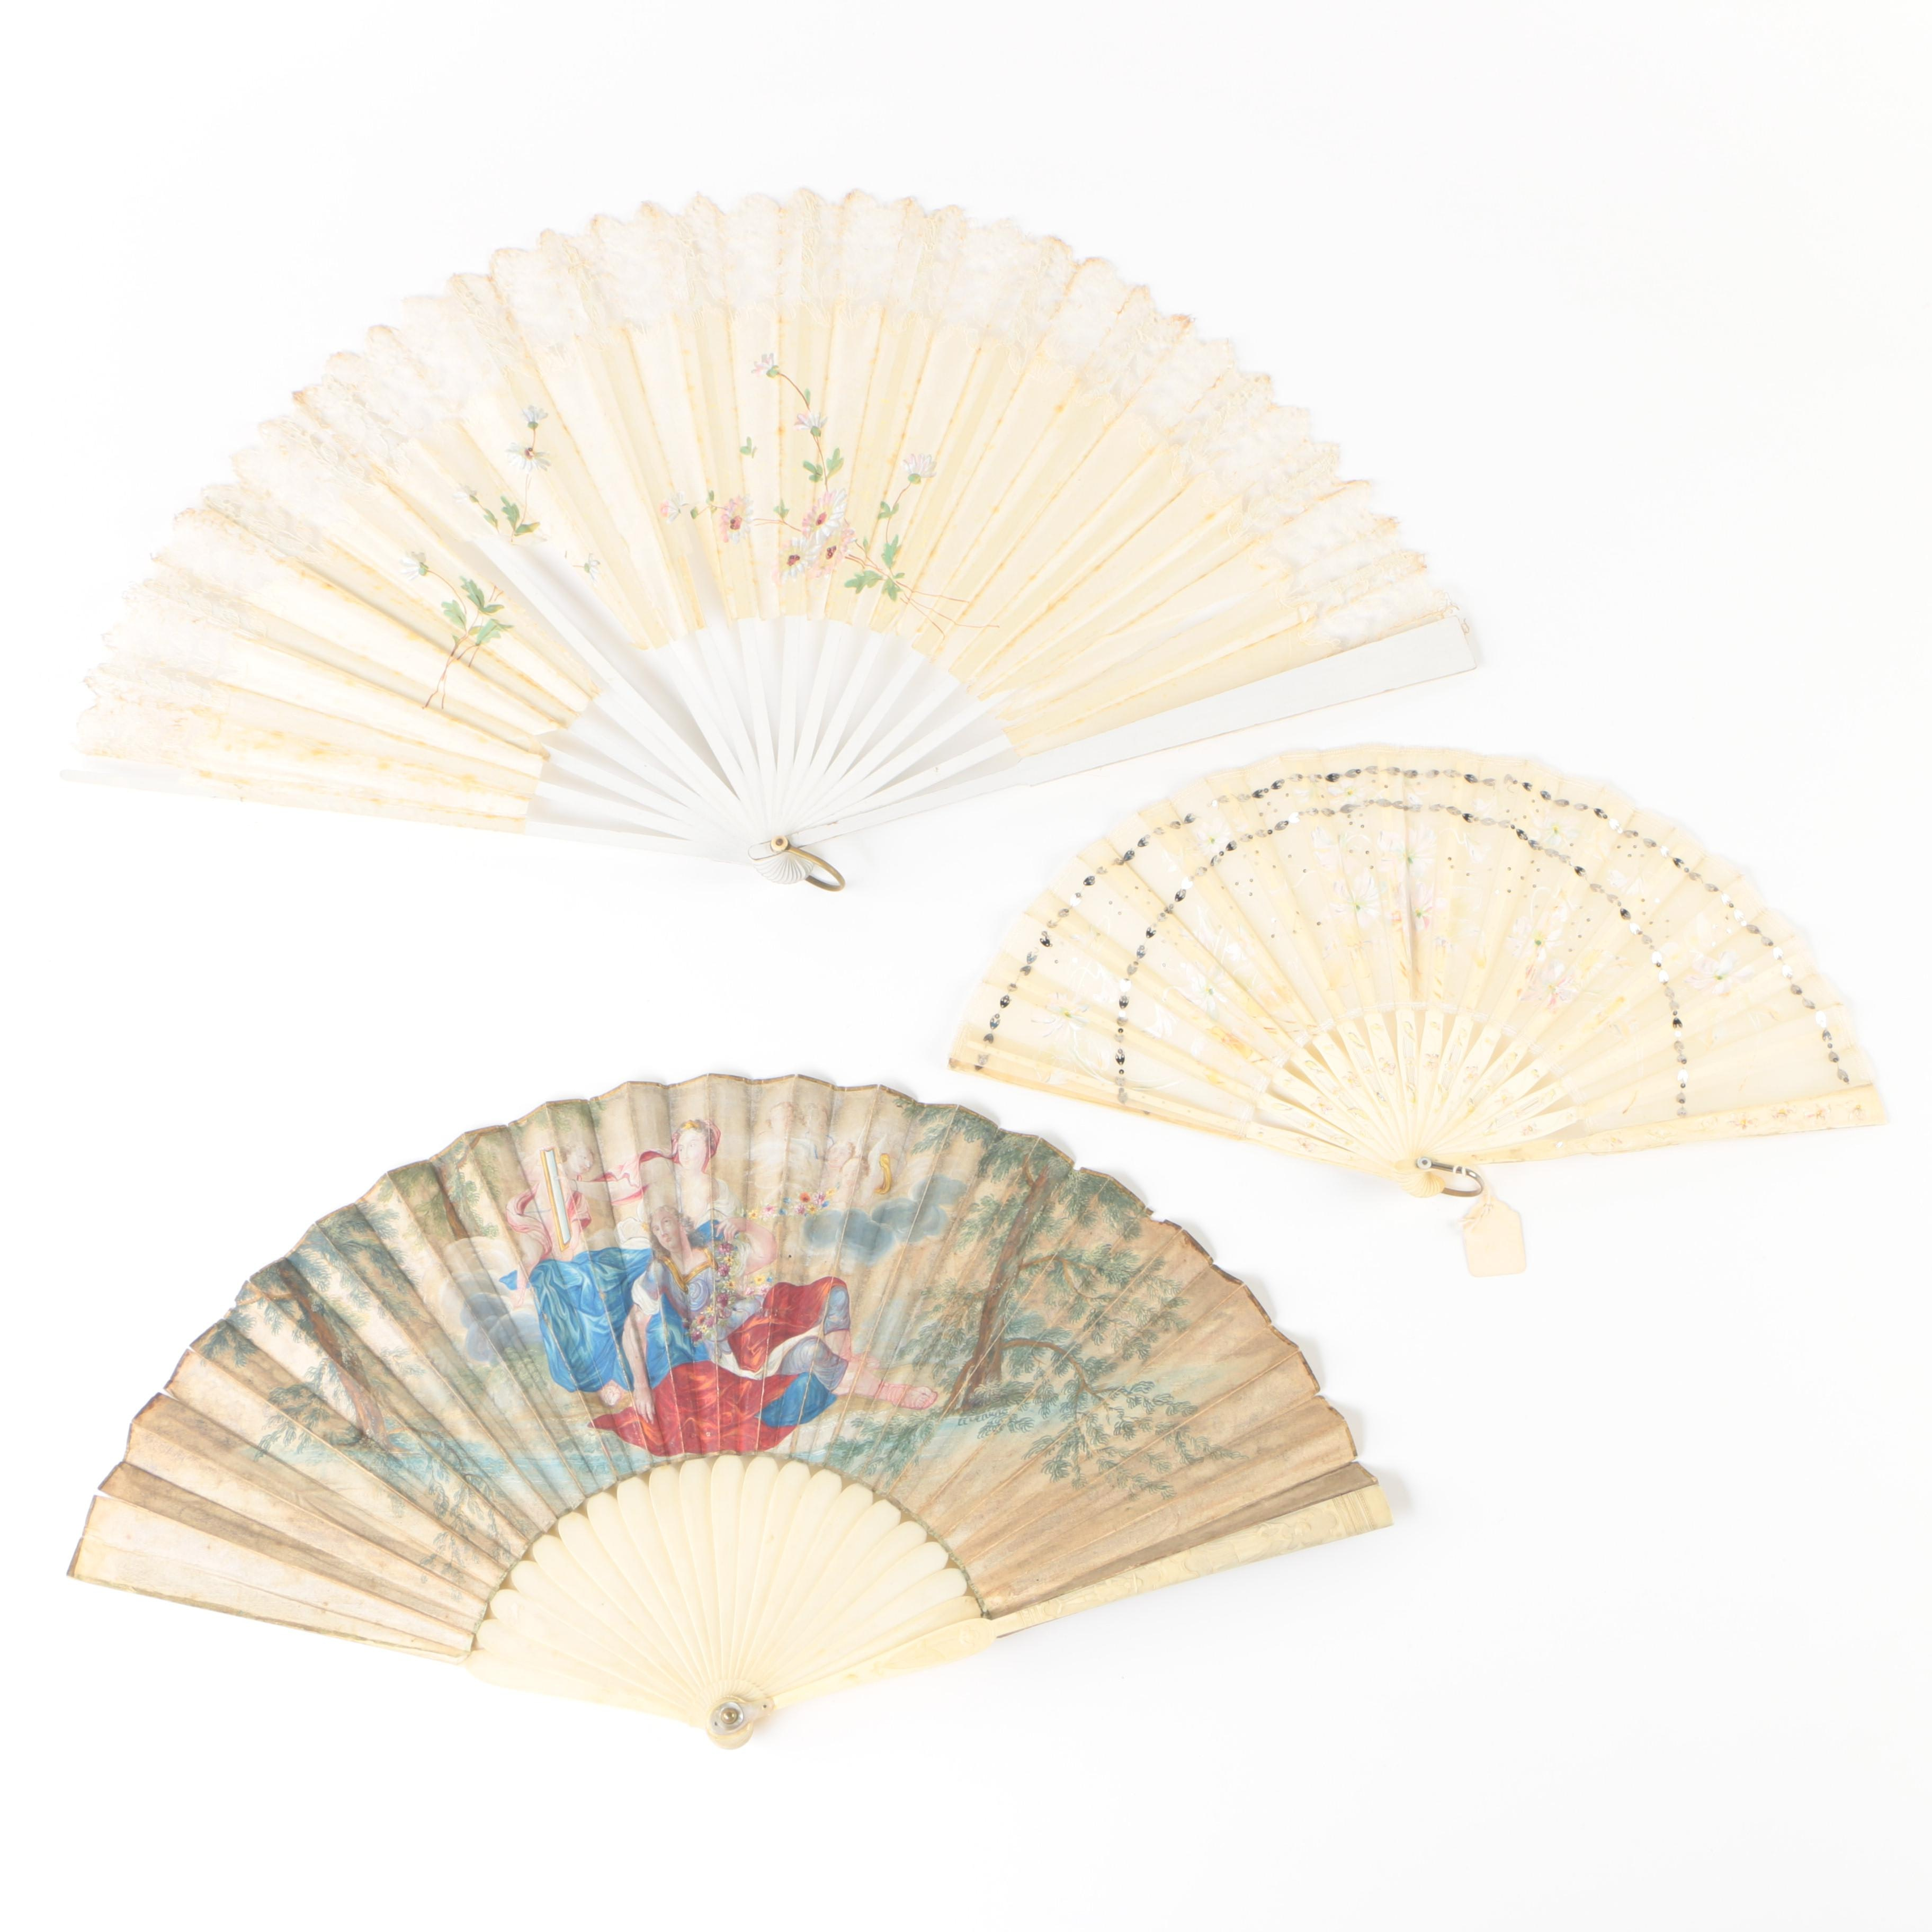 Antique Bone and Wood Fans with Hand-Painted Floral Motif Silk and Lace Leaves